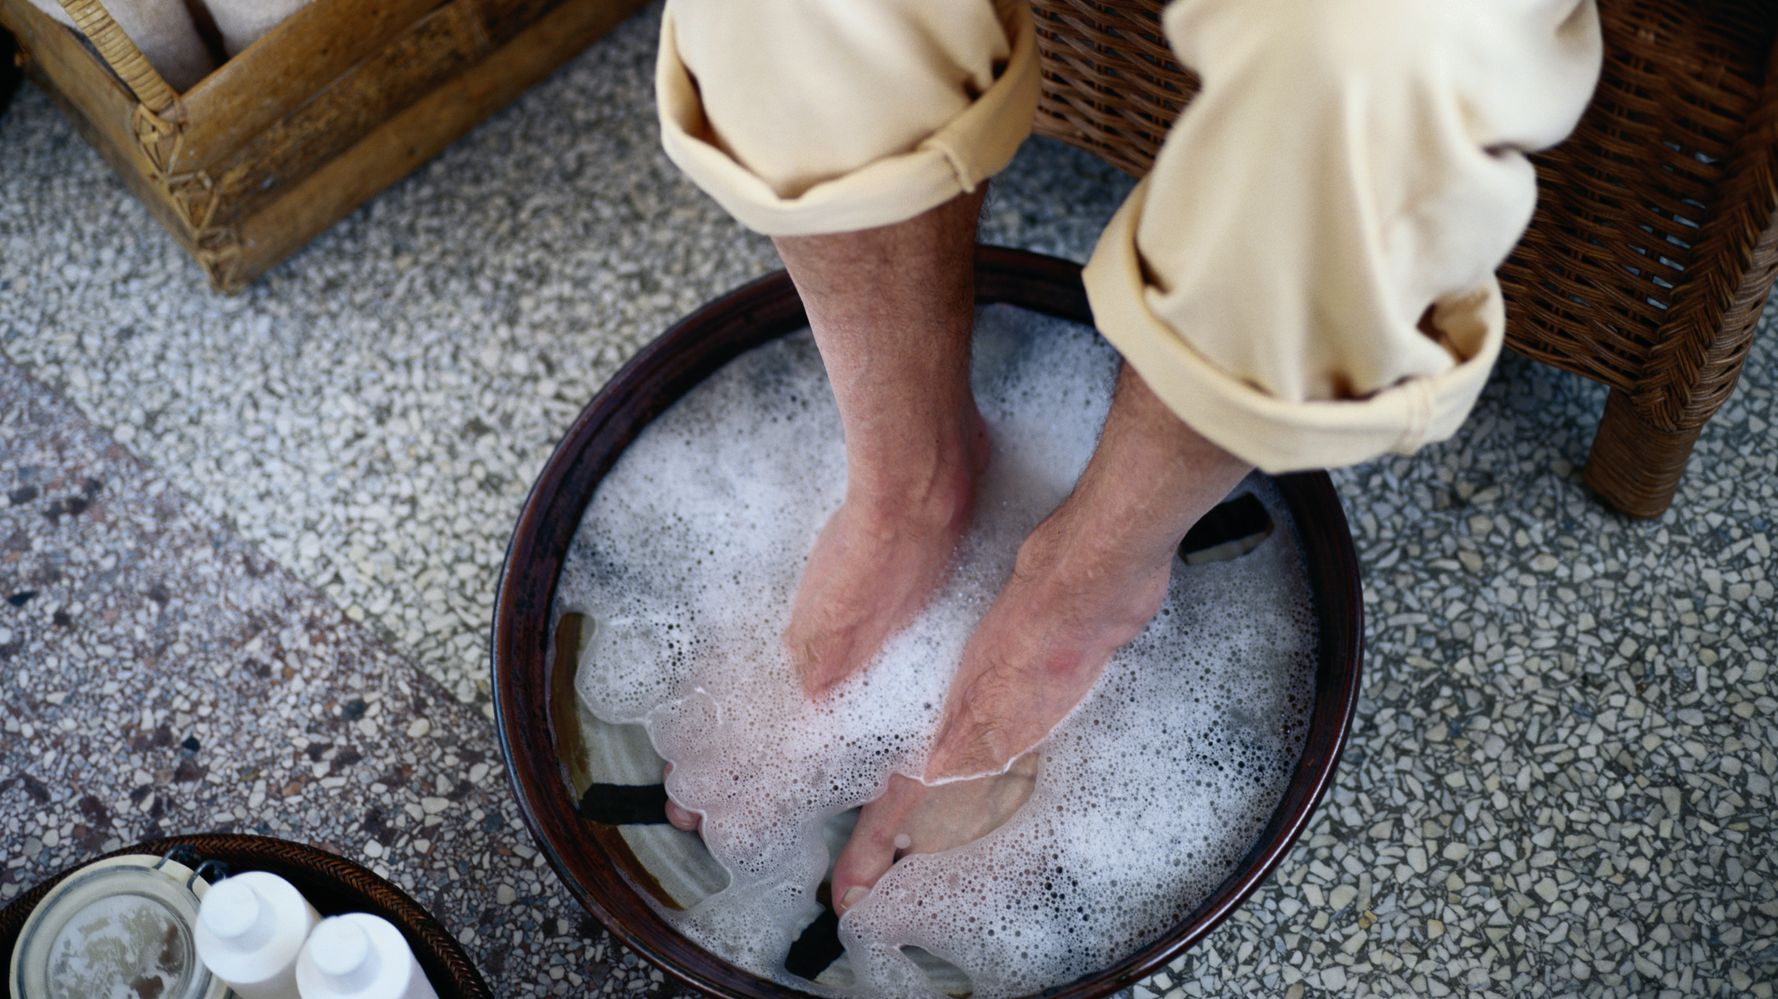 Here Are The Worst Things A Guy Could Do At A Pedicure | HuffPost Life